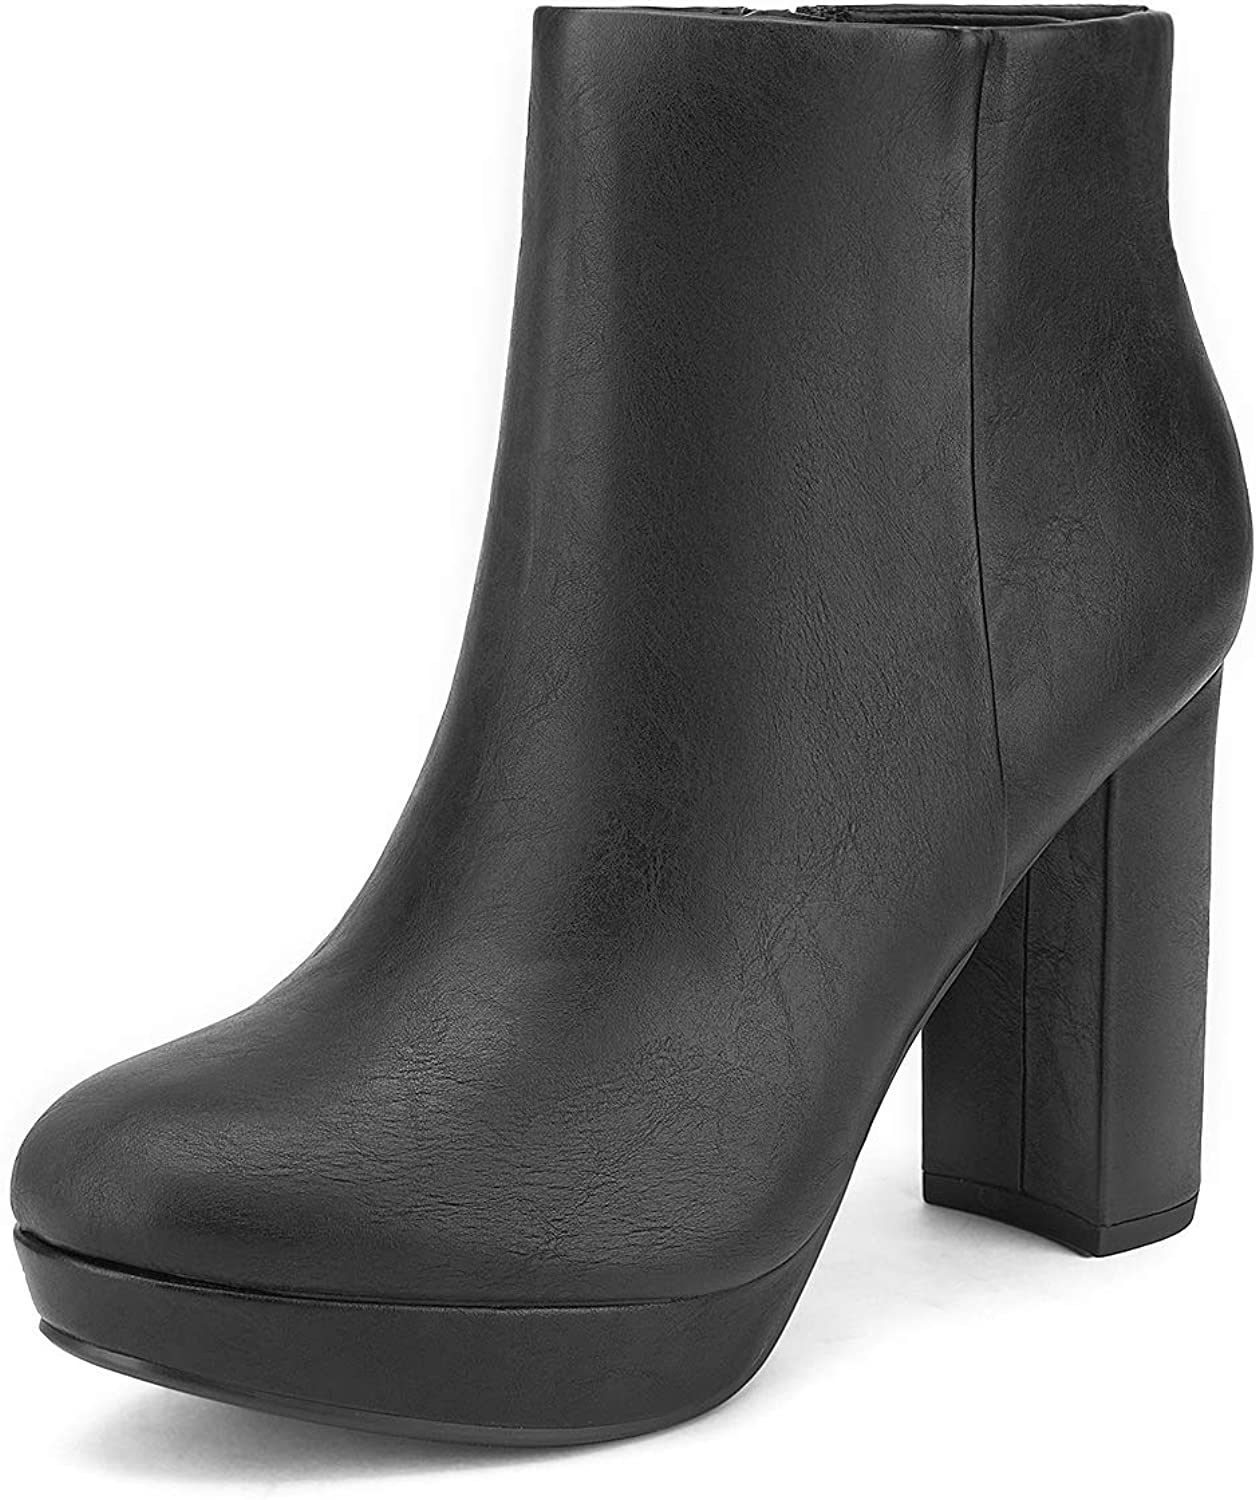 DREAM PAIRS Womens Stomp High Heel Ankle Boots